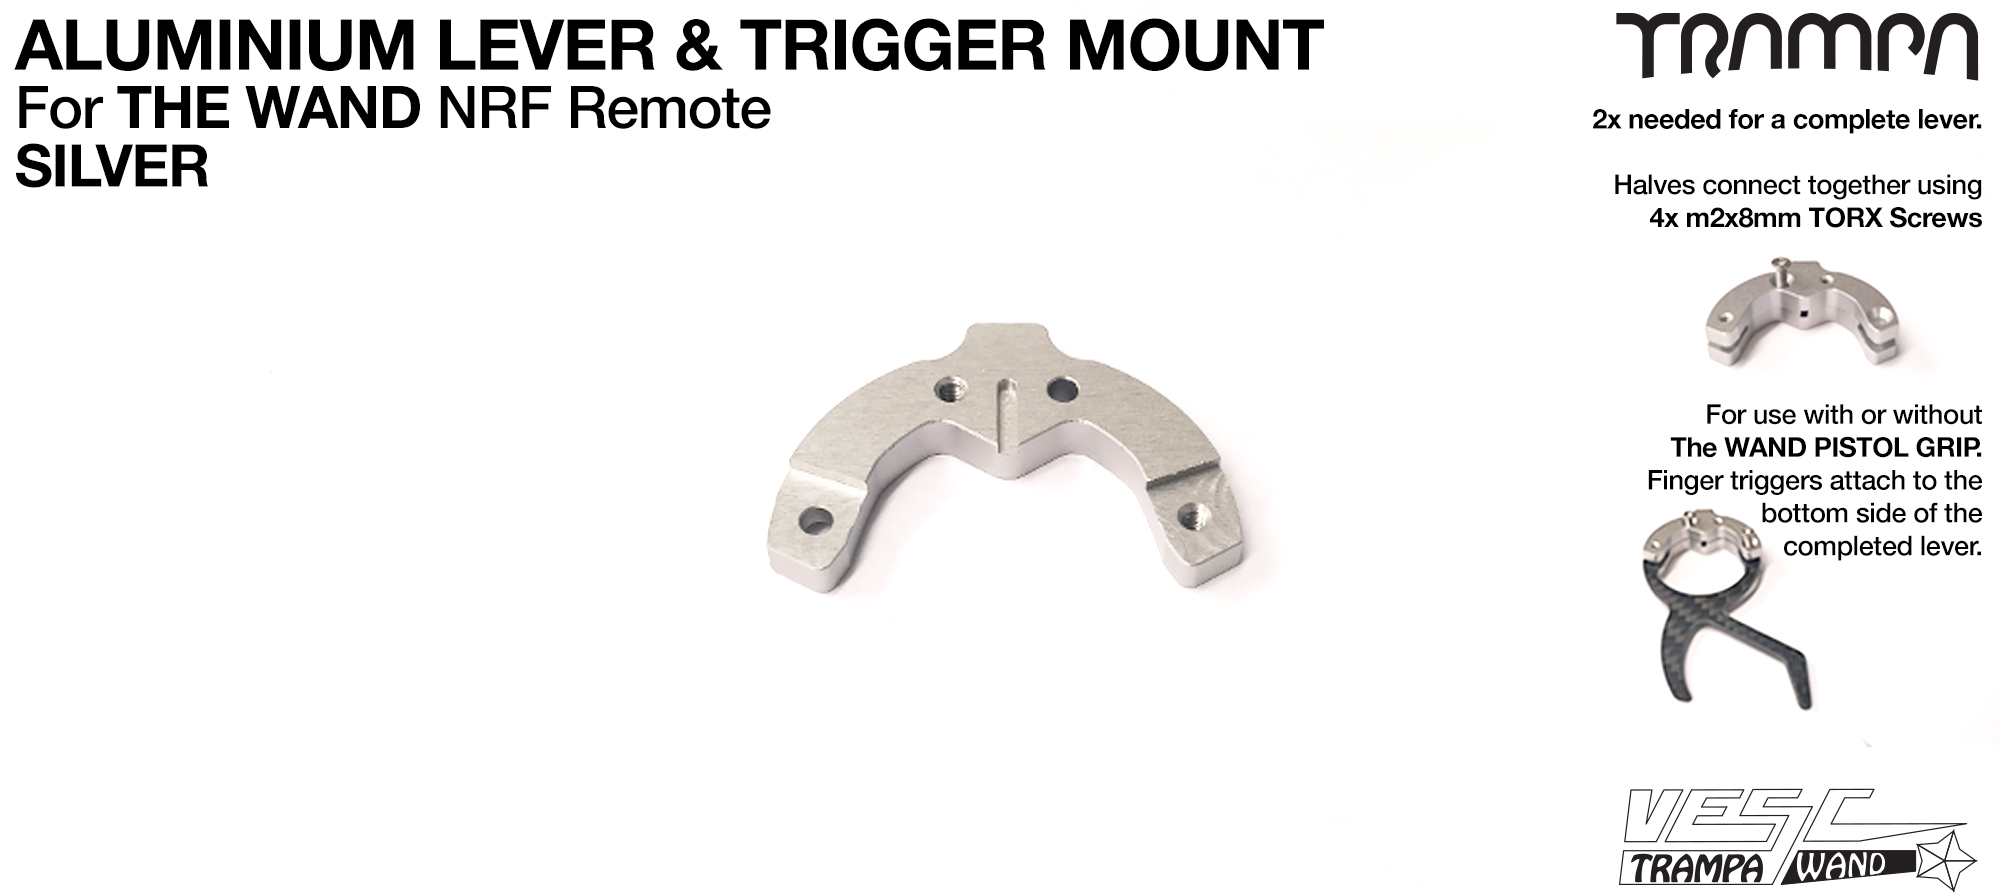 WAND - Aluminium Lever - For Mounting Finger Triggers